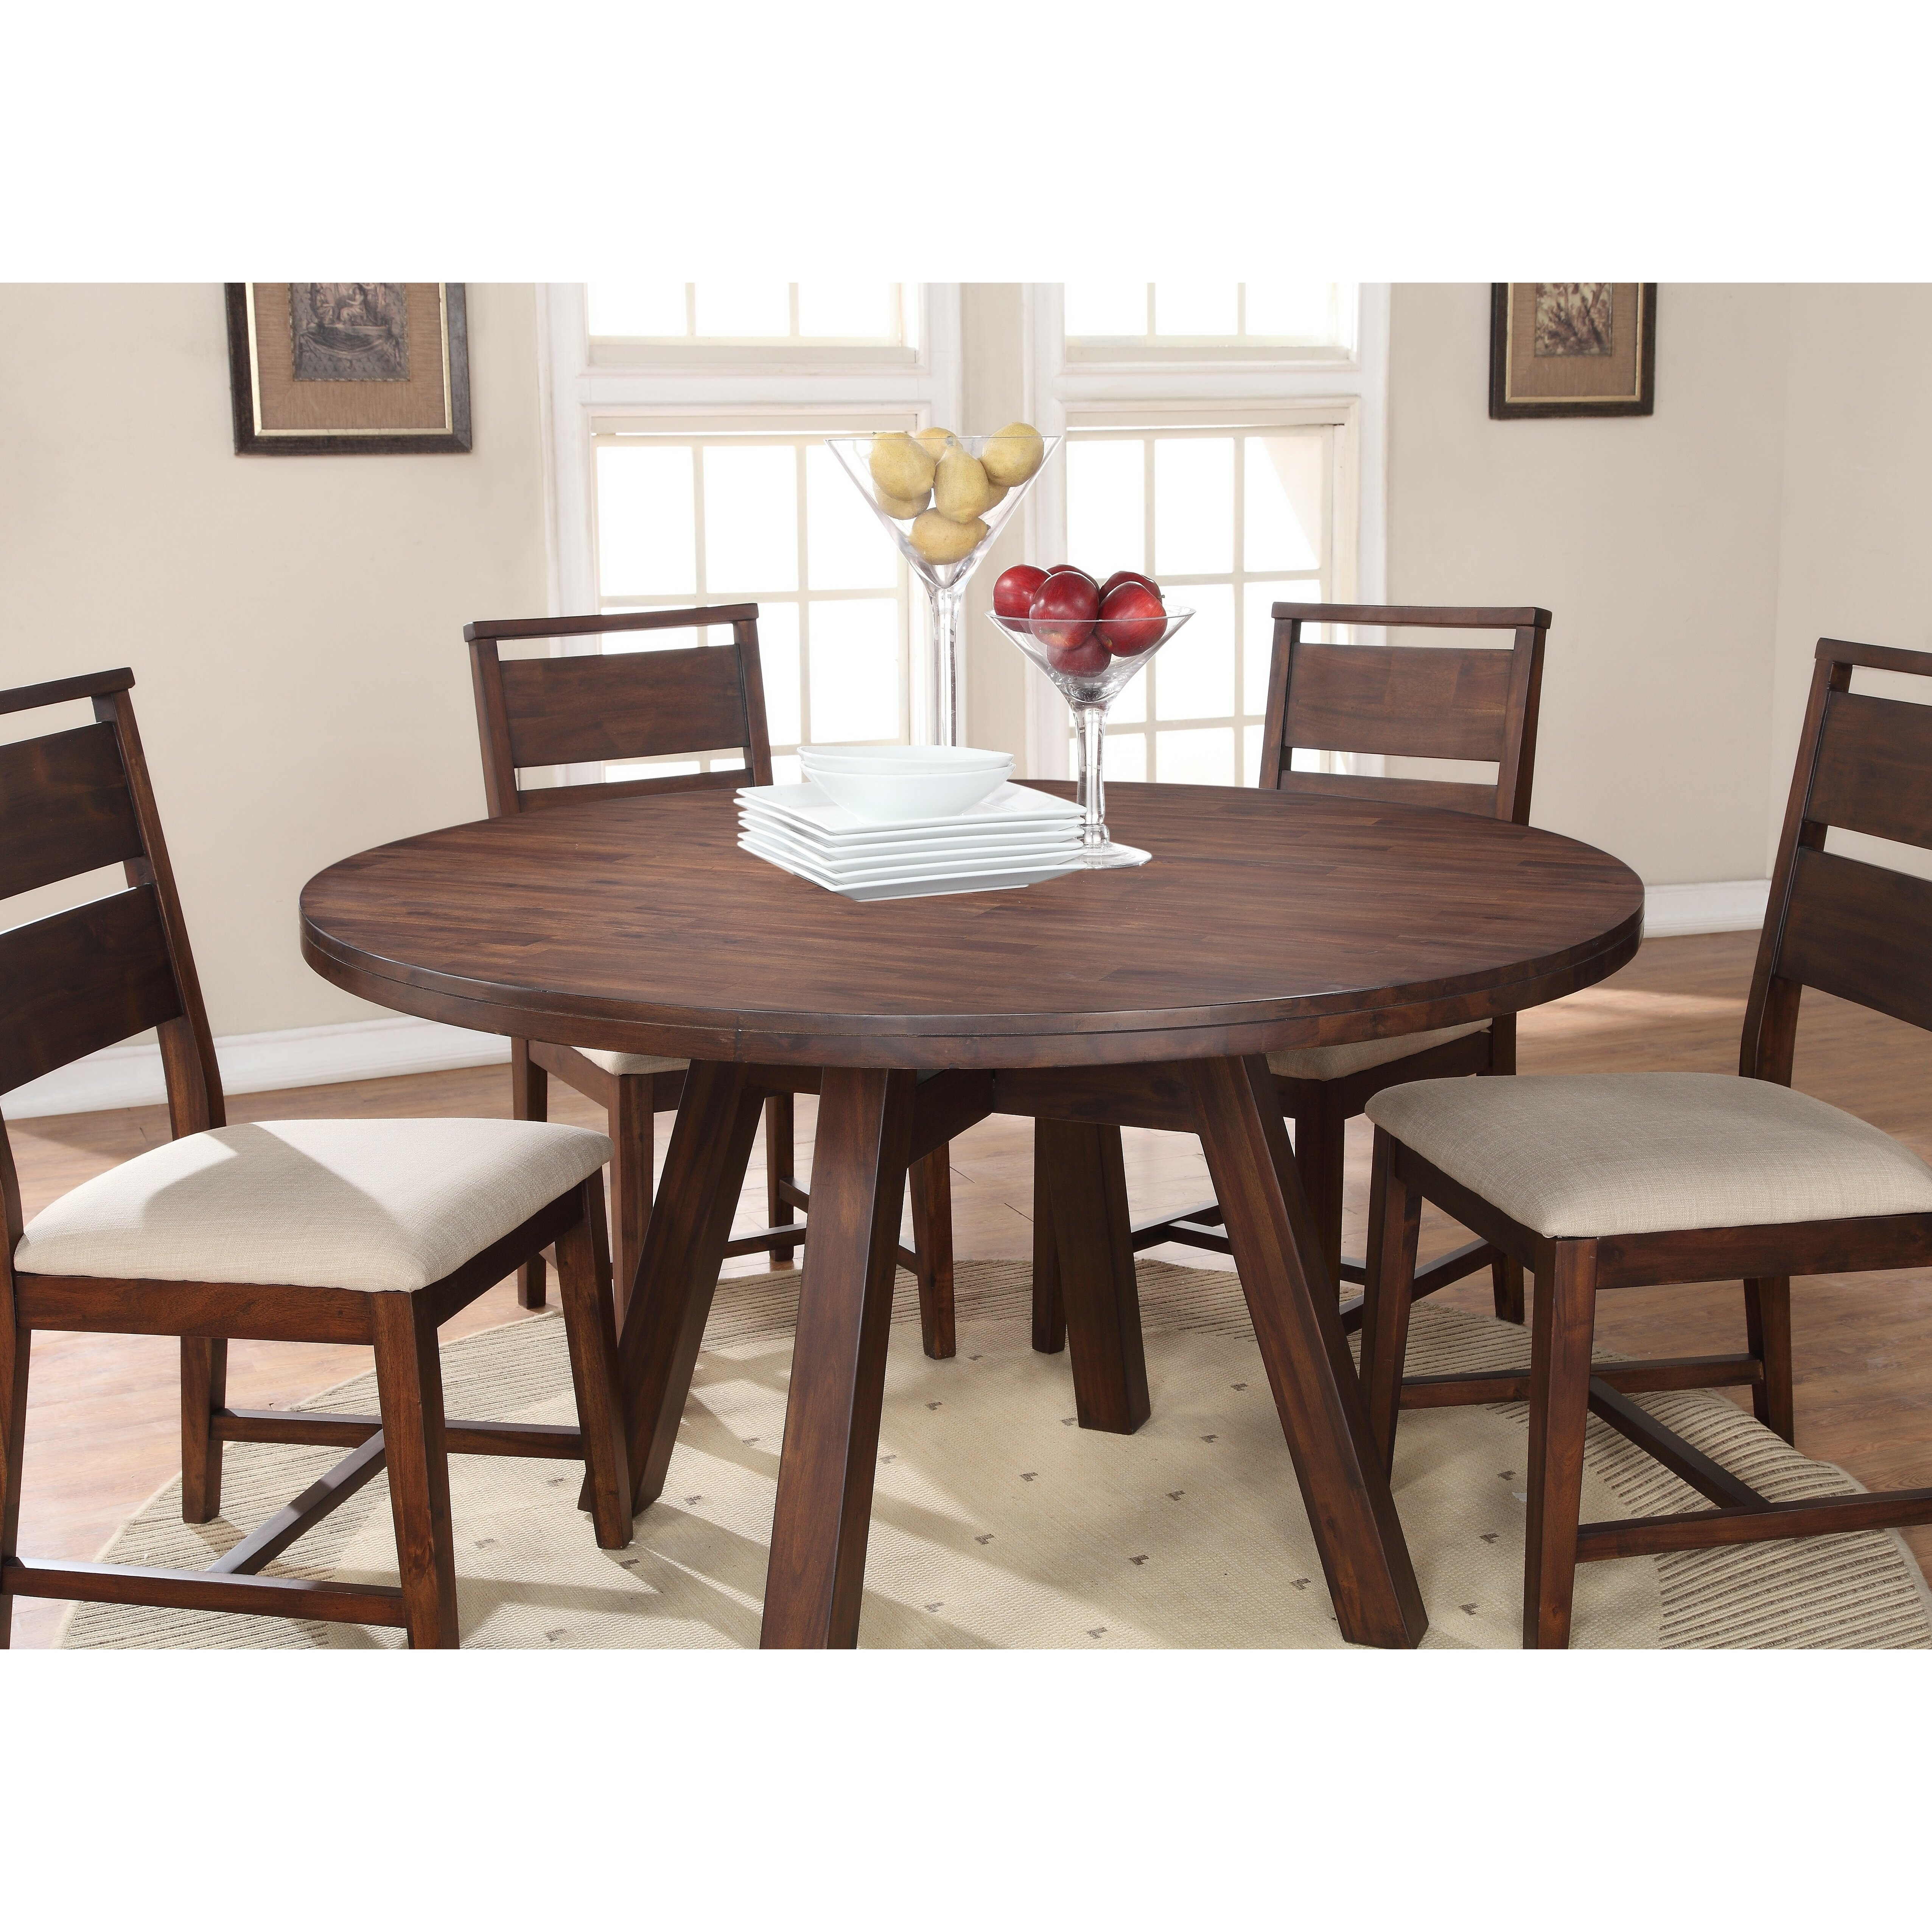 Modus portland dining table reviews wayfair